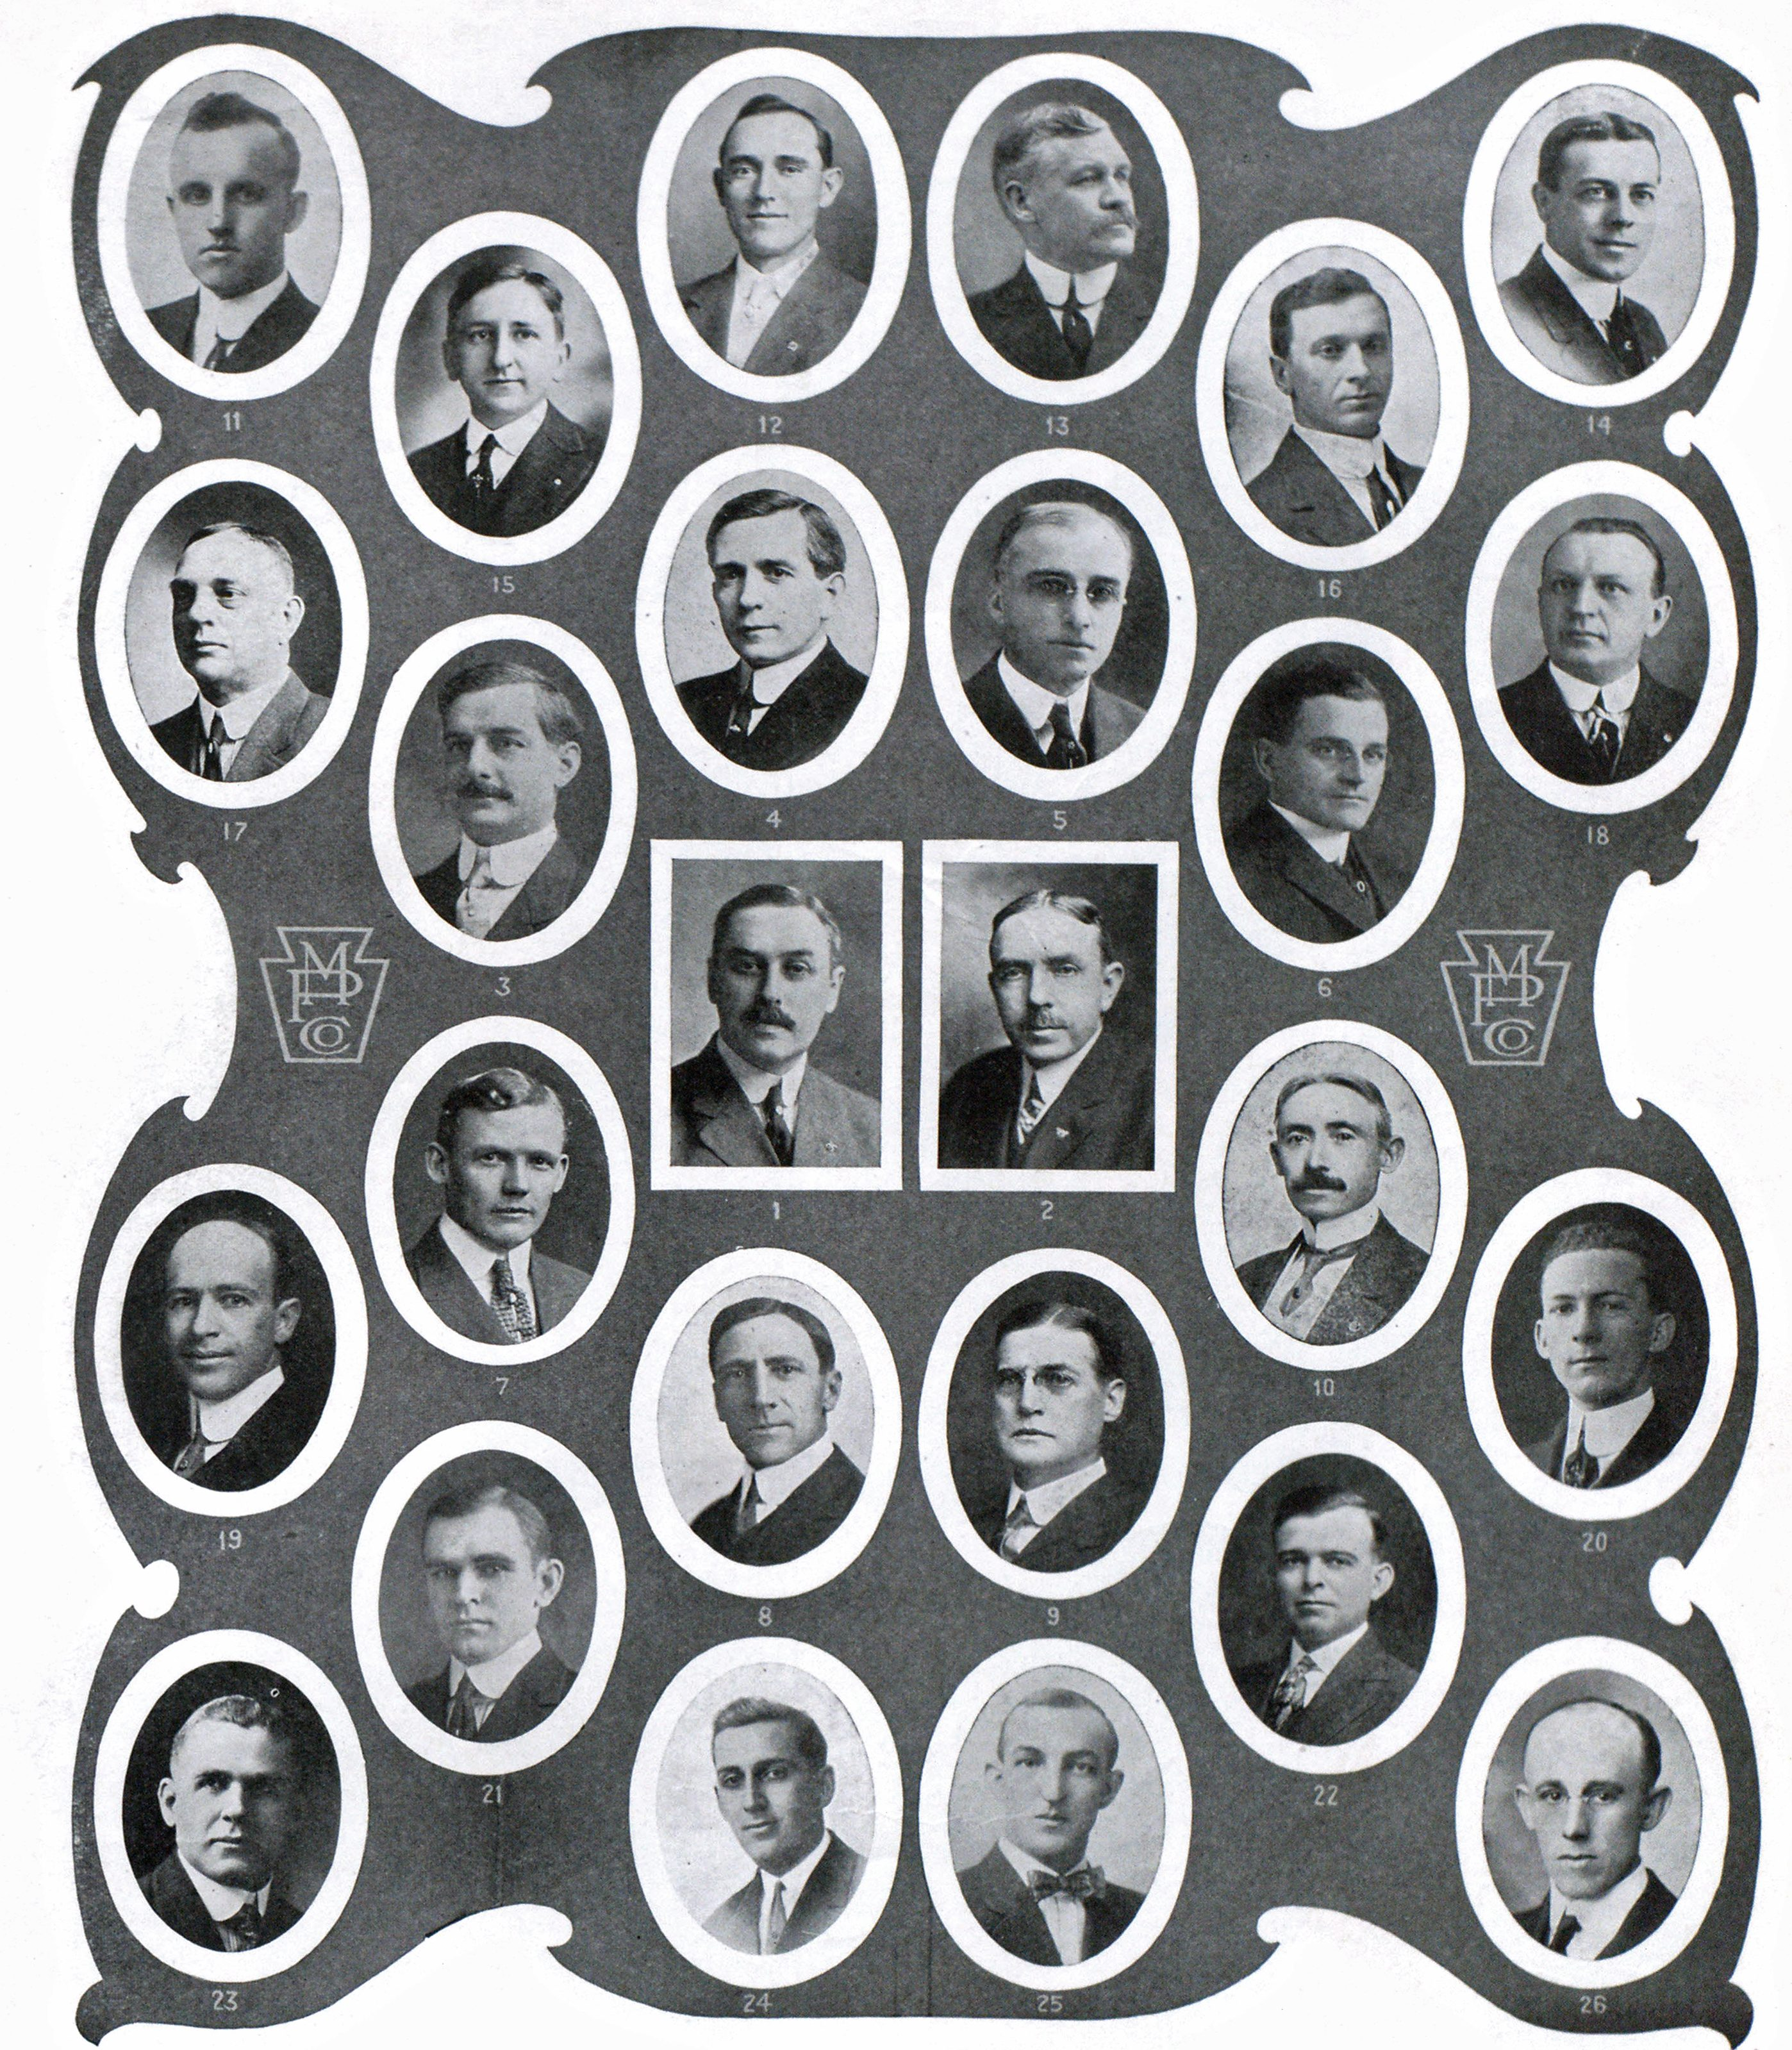 1. A. G. Holmes, Vice-President and Manager. 2. T. C. Clifford, Sales Manager. 3. V. E. Arnold, District Manager, New York. 4. R. M. Stotler, District Manager Kansas City. 5. F. G. Swaffield, District Manager Columbia, S. C. 6. F. H. Bradford, District Manager Chicago. 7. H. J. Miller, District Manager Seattle. 8. G. U. Pritchard. 9. J. H. Davis. 10. J. H. Foley. 11. W. H. Talkes. 12. C. Barry. 13. J. W. Turner. 14. D. C. Kelly. 15. C. R. Zesky. 16. J. A. Null. 17. J. M. Wilson. 18. H. C. Zesky. 19. H. I. Beardsley. 20. Hugh Pinnix. 21. M. L. Northrop. 22. L. L. Ballard. 23. E. H. Tuttle. 24. M. J. Harper. 25. G. S. Wood. 26. G. W. Bailey.